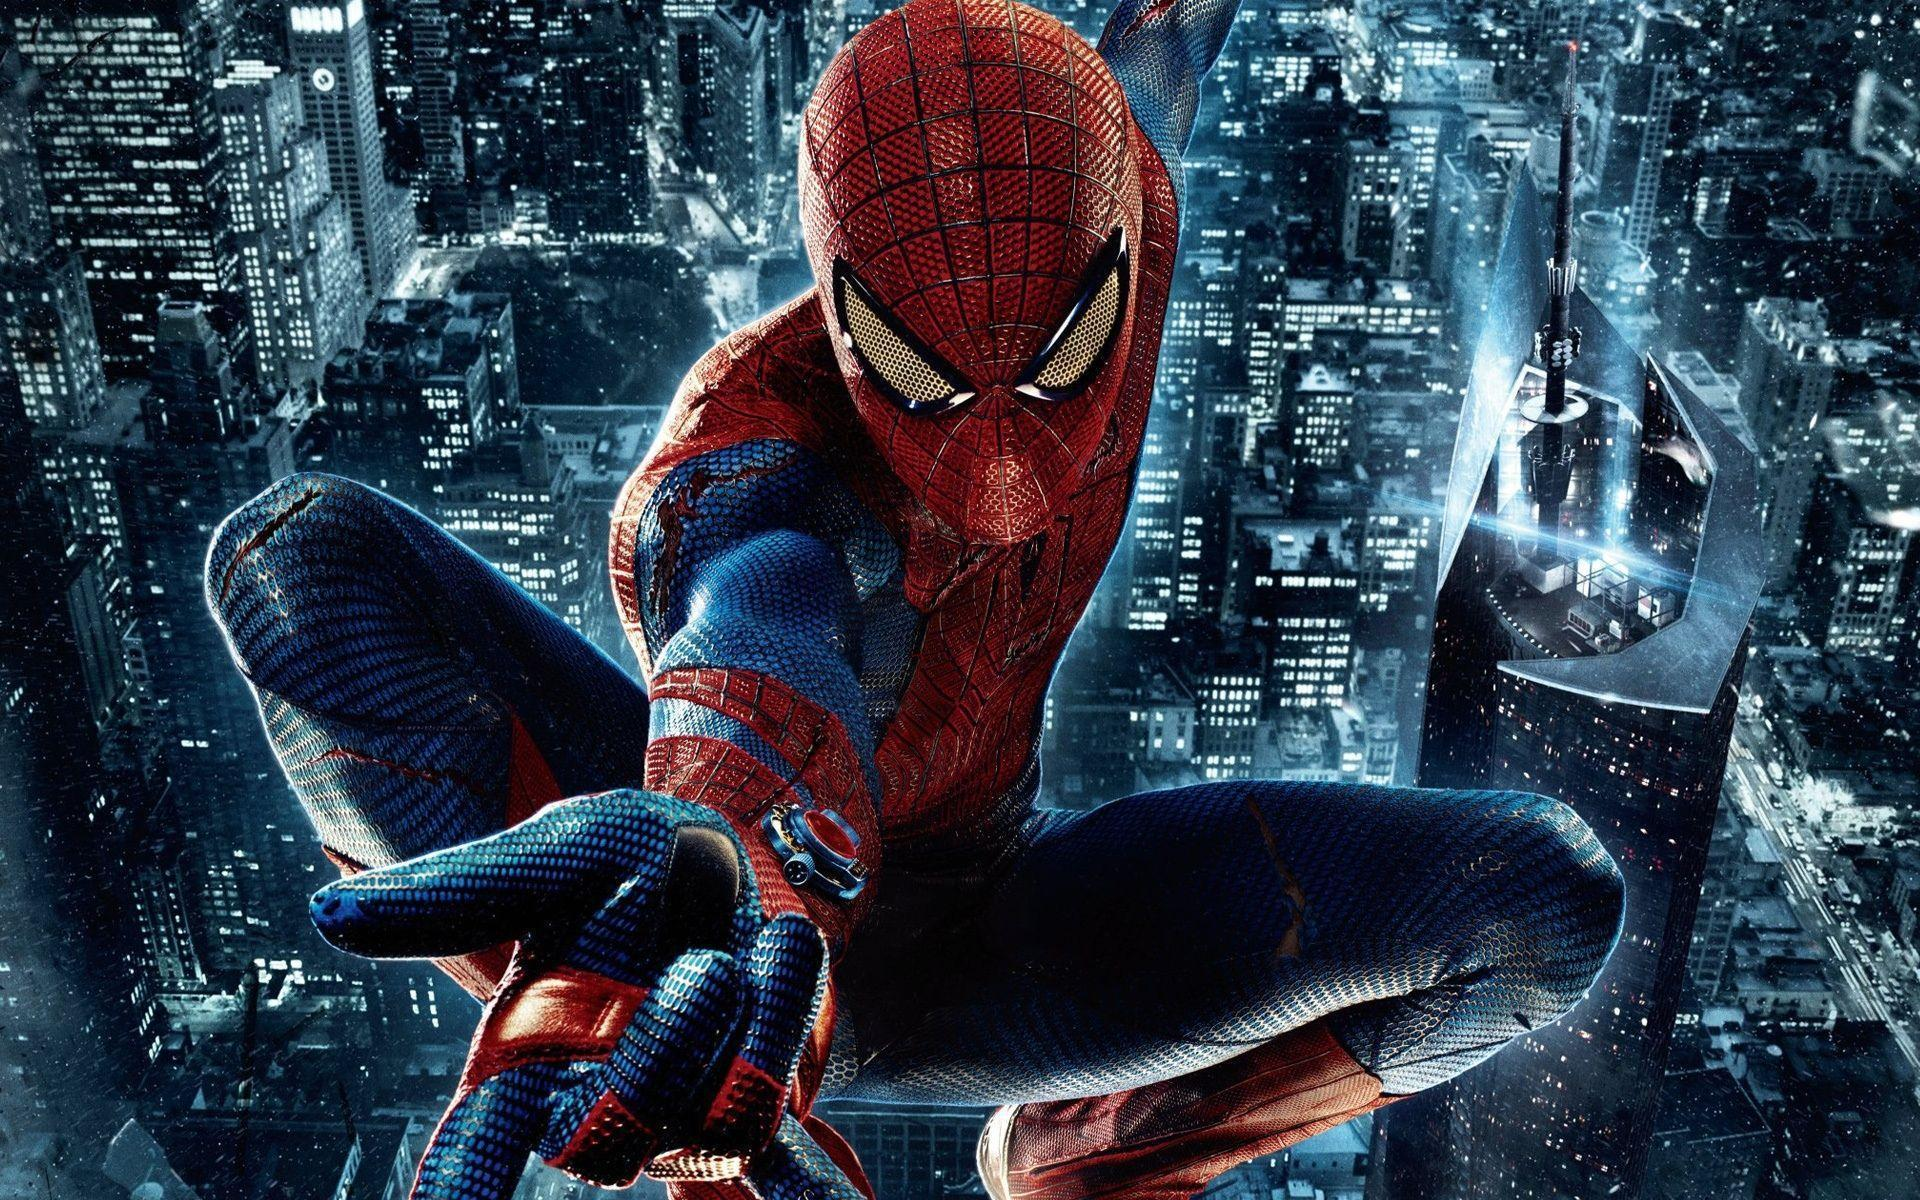 Game Of Spider Man Hd Wallpaper: The Amazing Spider-Man Wallpapers